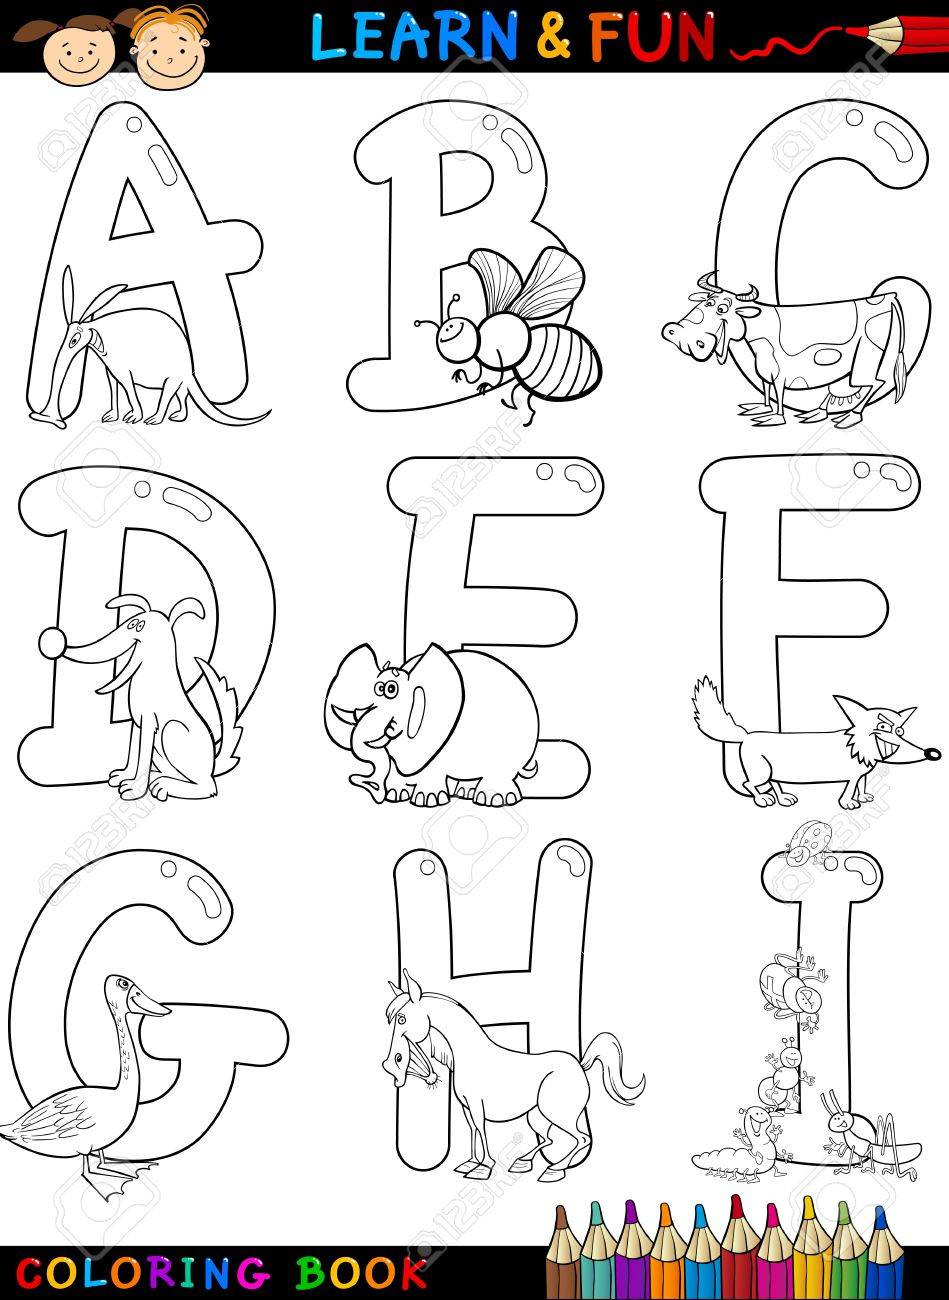 Cartoon Alphabet Coloring Book or Page Set with Funny Animals..